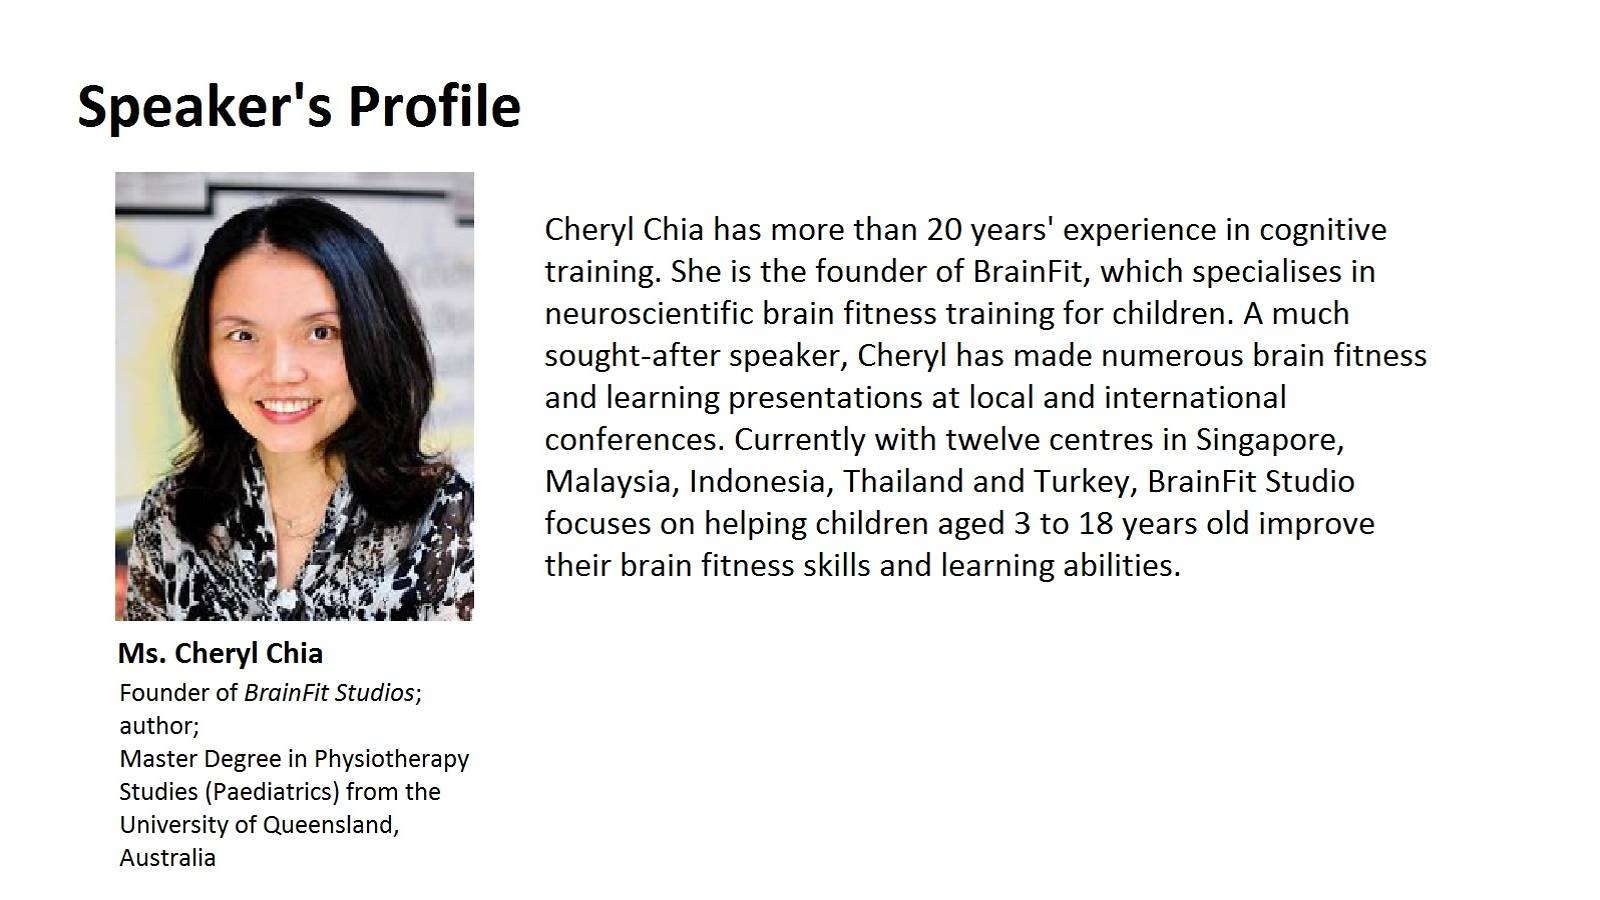 Dec seminar_Speakers Profile [Cheryl]